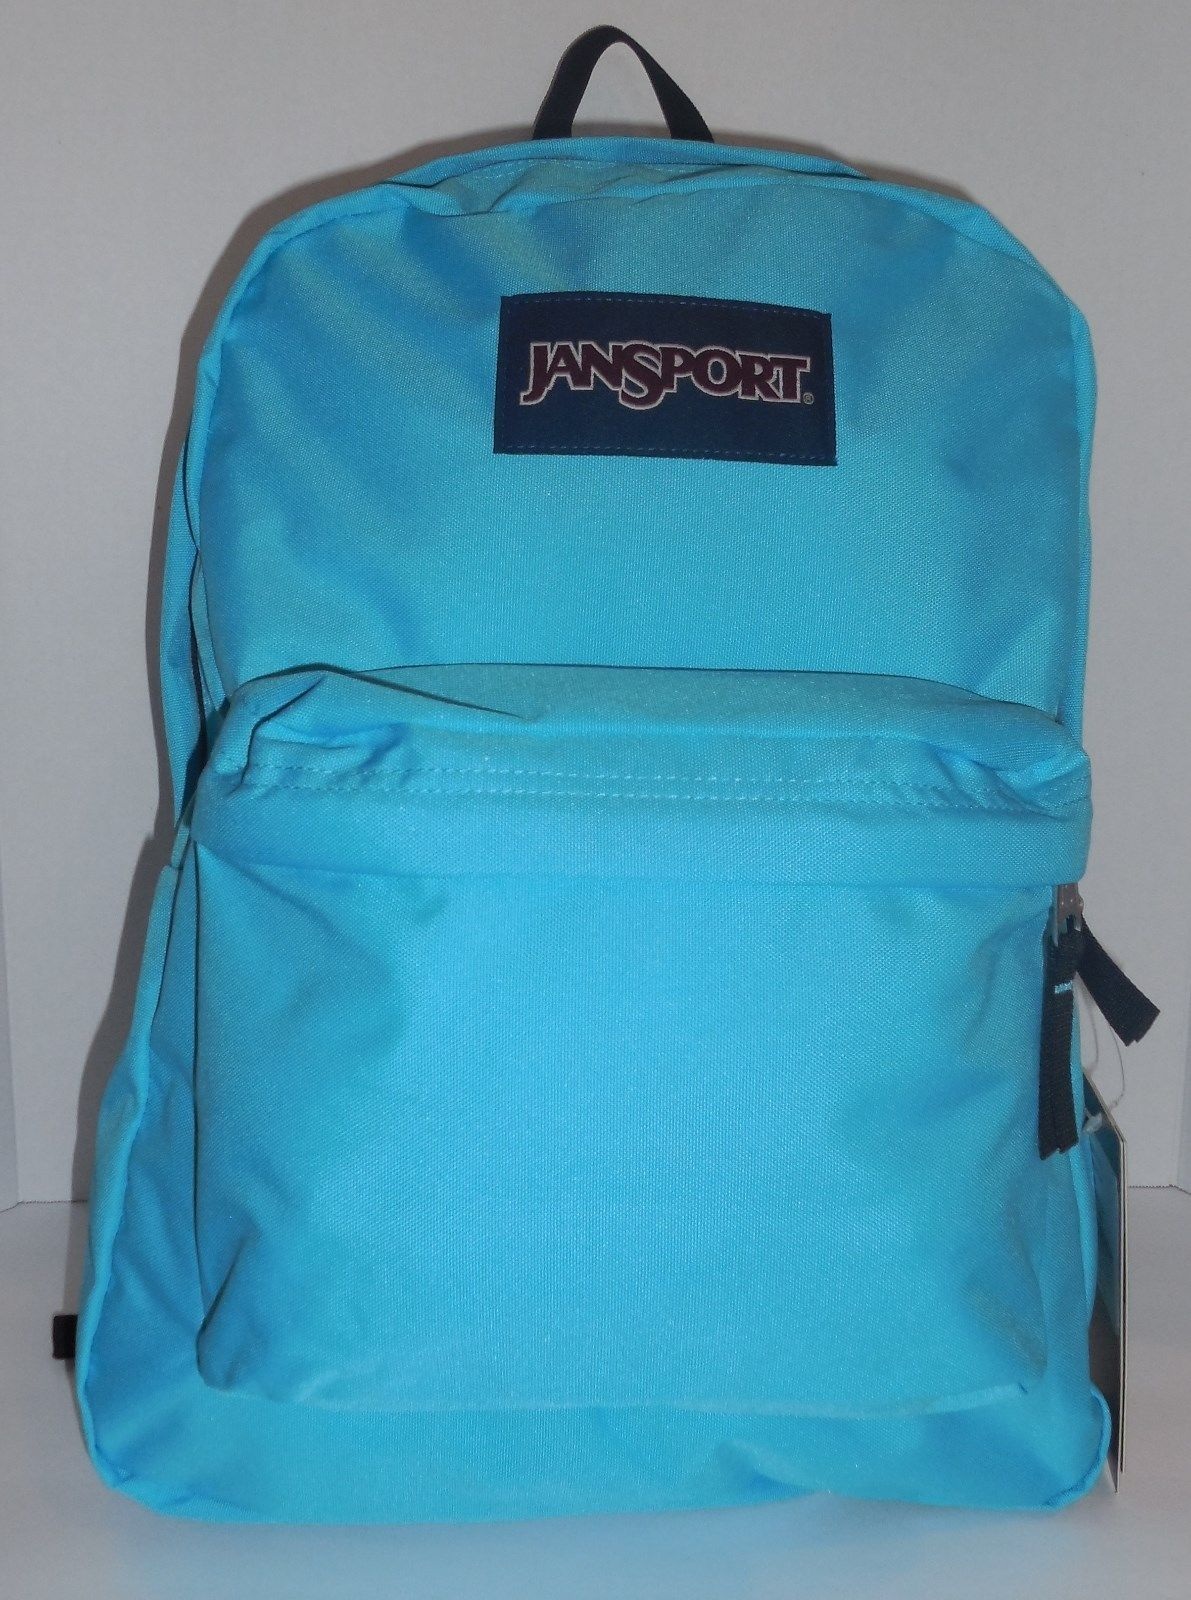 120dfcfd2ee8 Backpacks For Girls In High School Jansport- Fenix Toulouse Handball